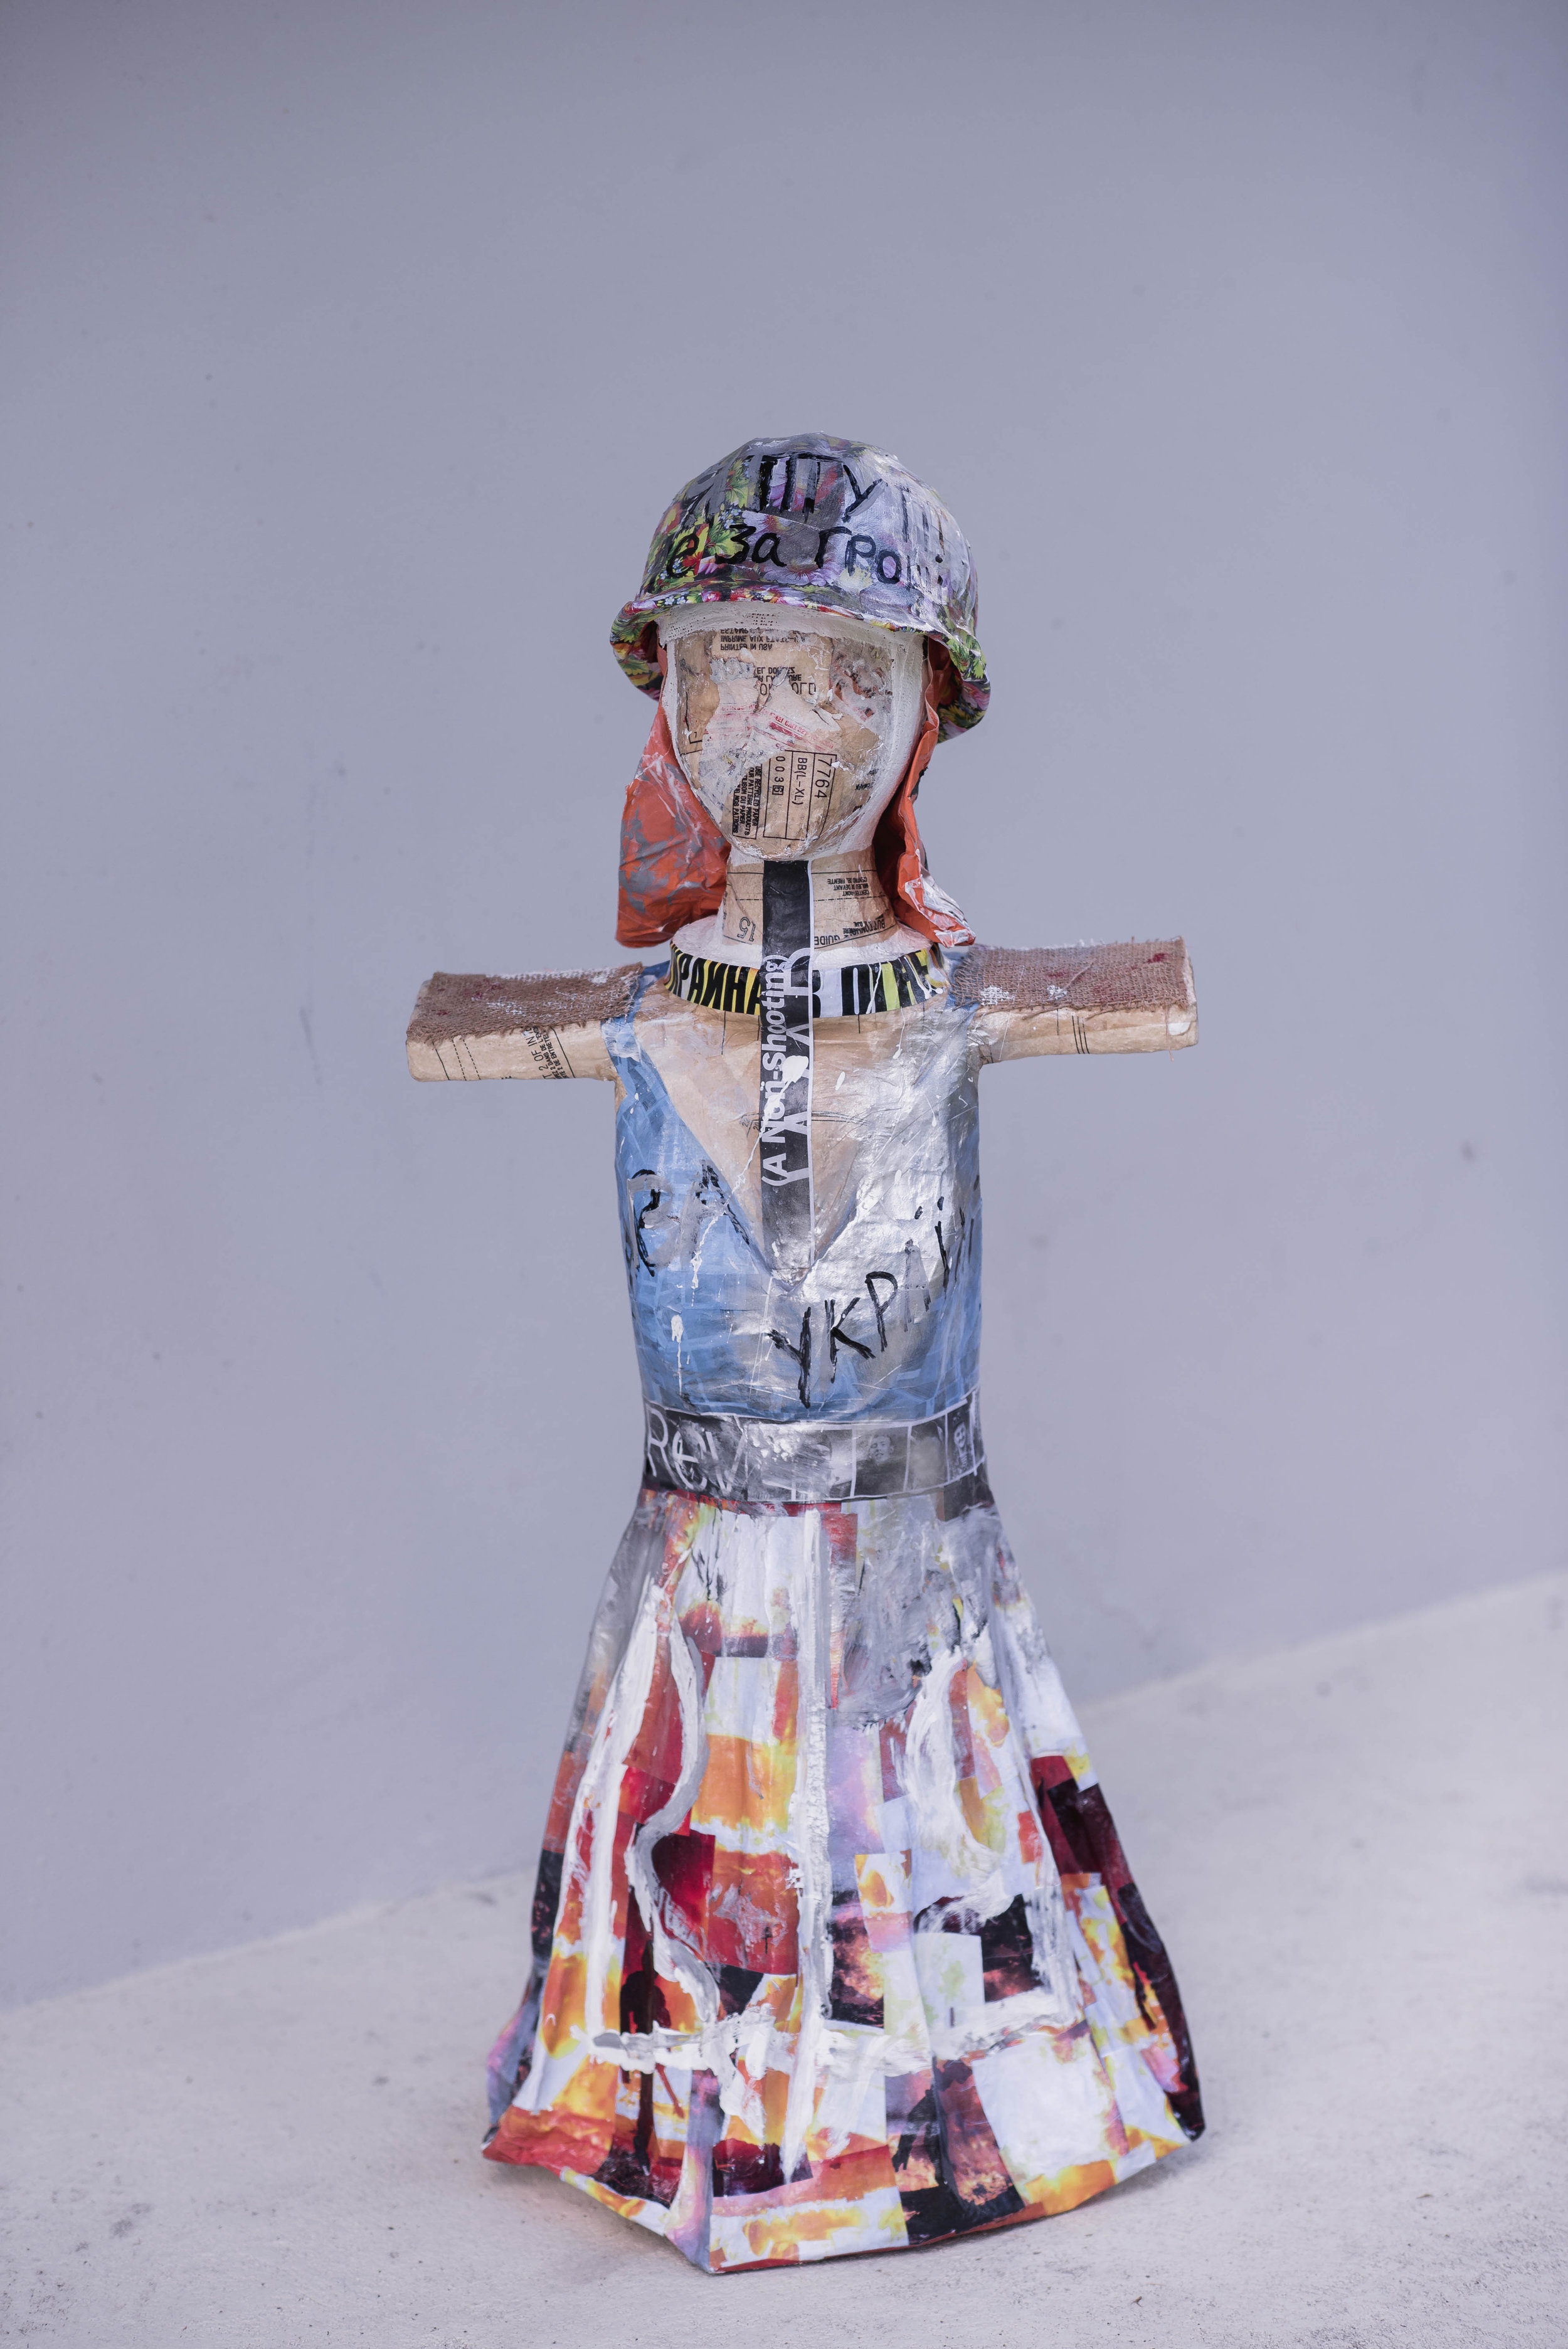 Ode to Kyiv  1.0 x 0.5 meters, 2018 Paper mache, plaster of paris, styrofoam, cardboard, acrylic paint, paper, duct tape, wires, fabric, spray paint, burlap, and plastic helmet